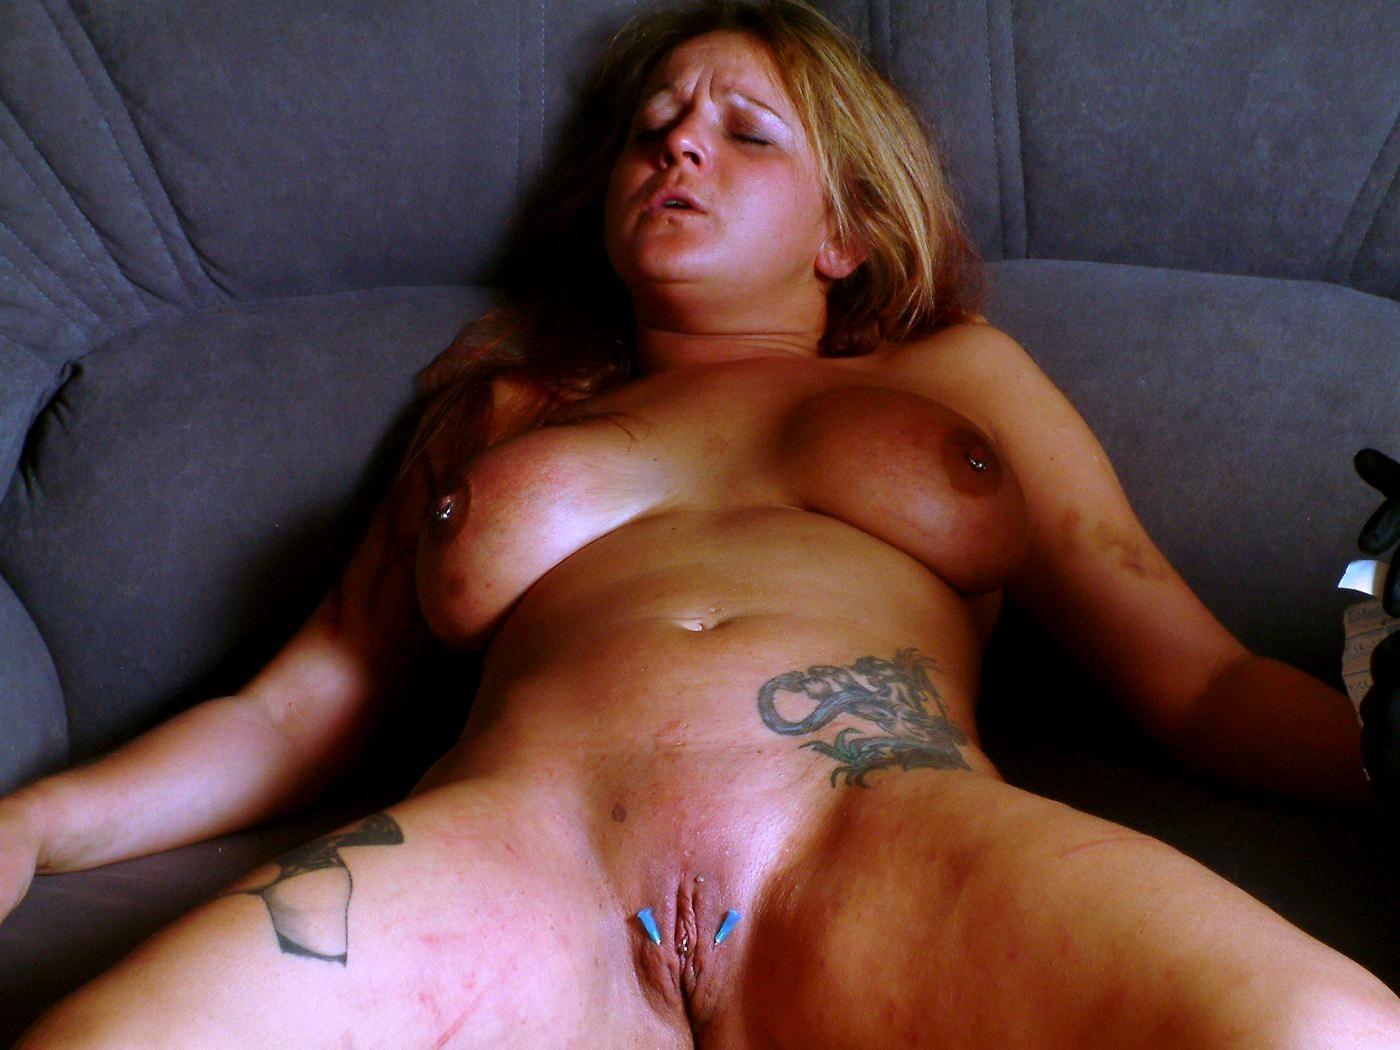 Naked screaming pussy, nude muscle girls pussys